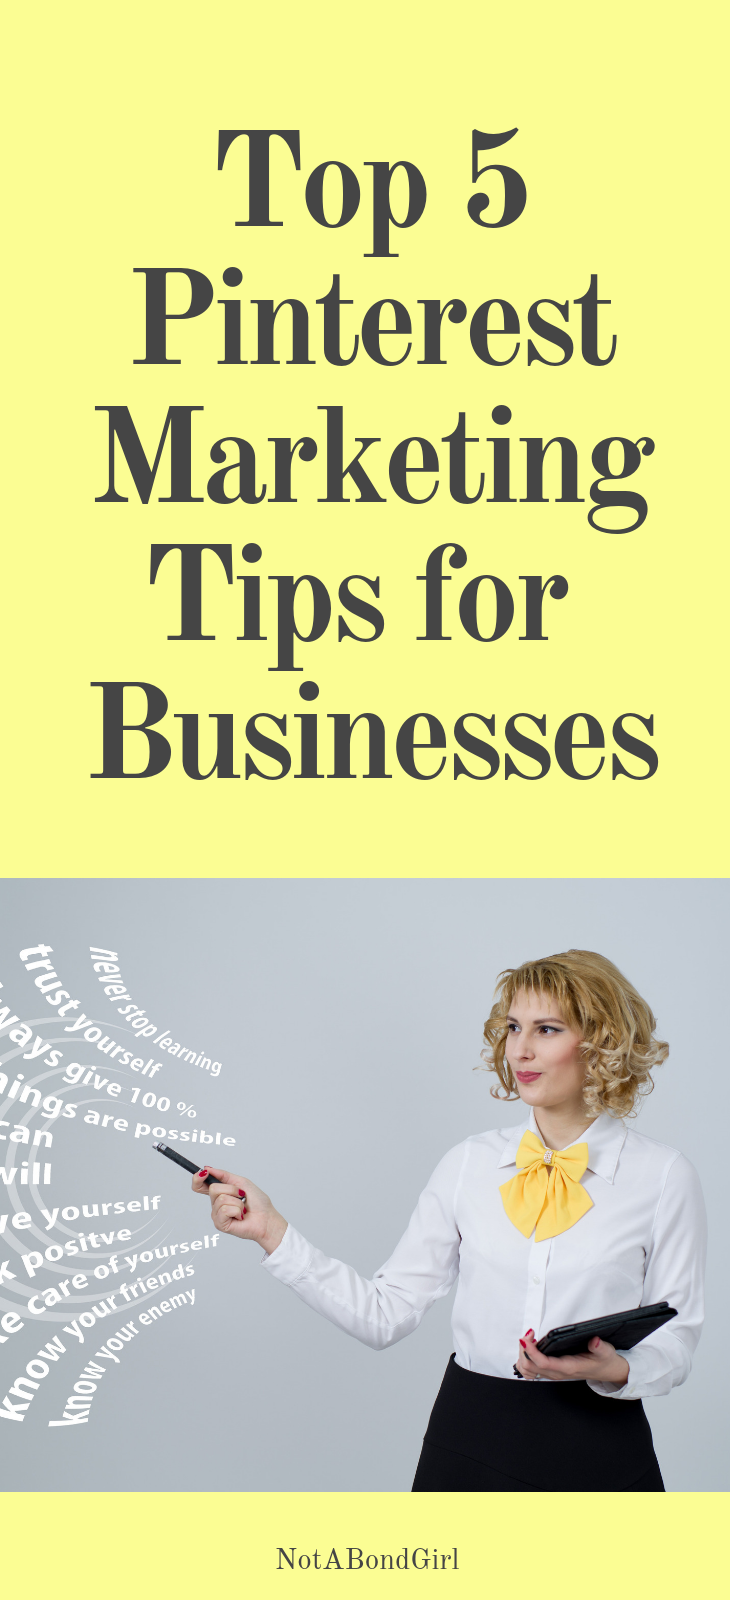 Top 5 Pinterest Marketing Tips of the Week for Businesses, Startups and Brands